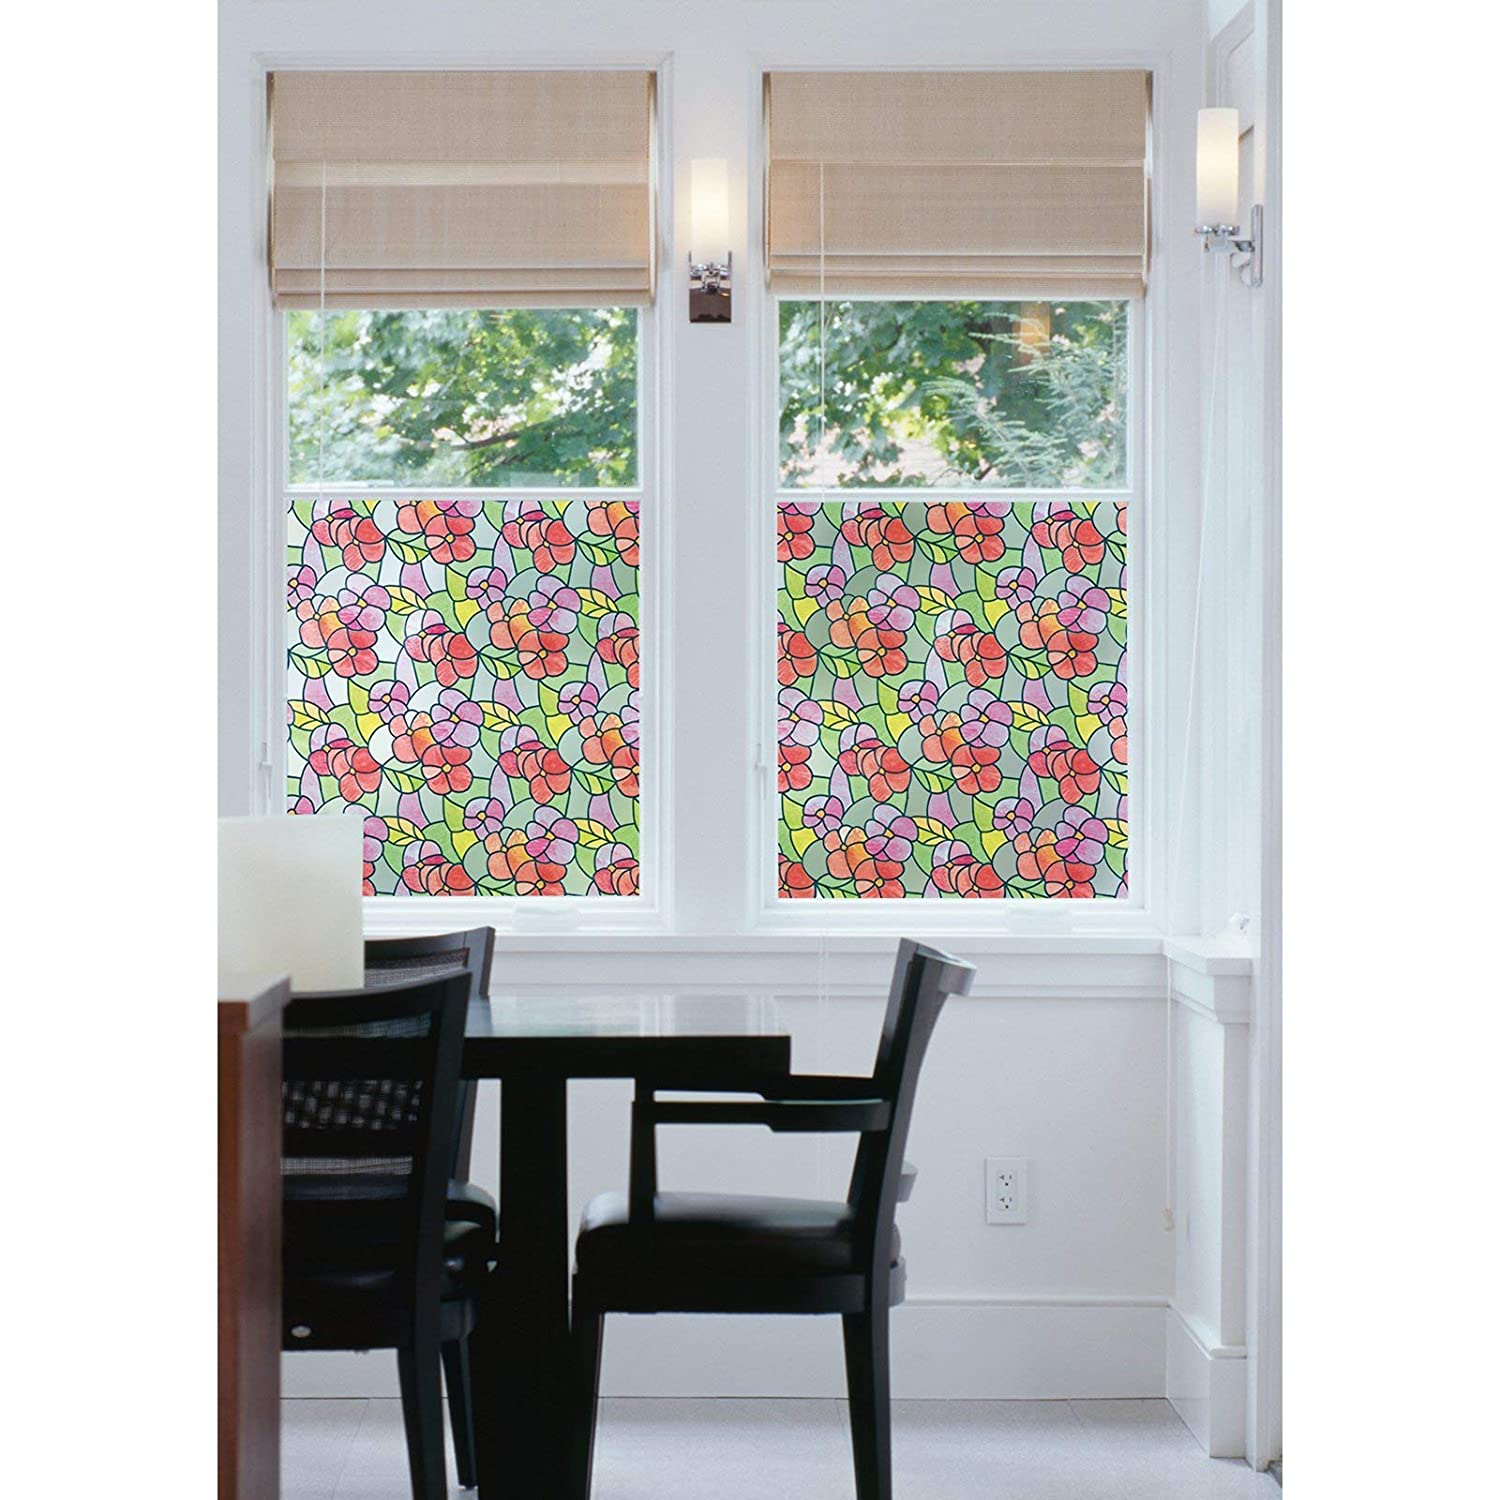 Pansies Red DC Fix 338-0017 Static Cling Window Film